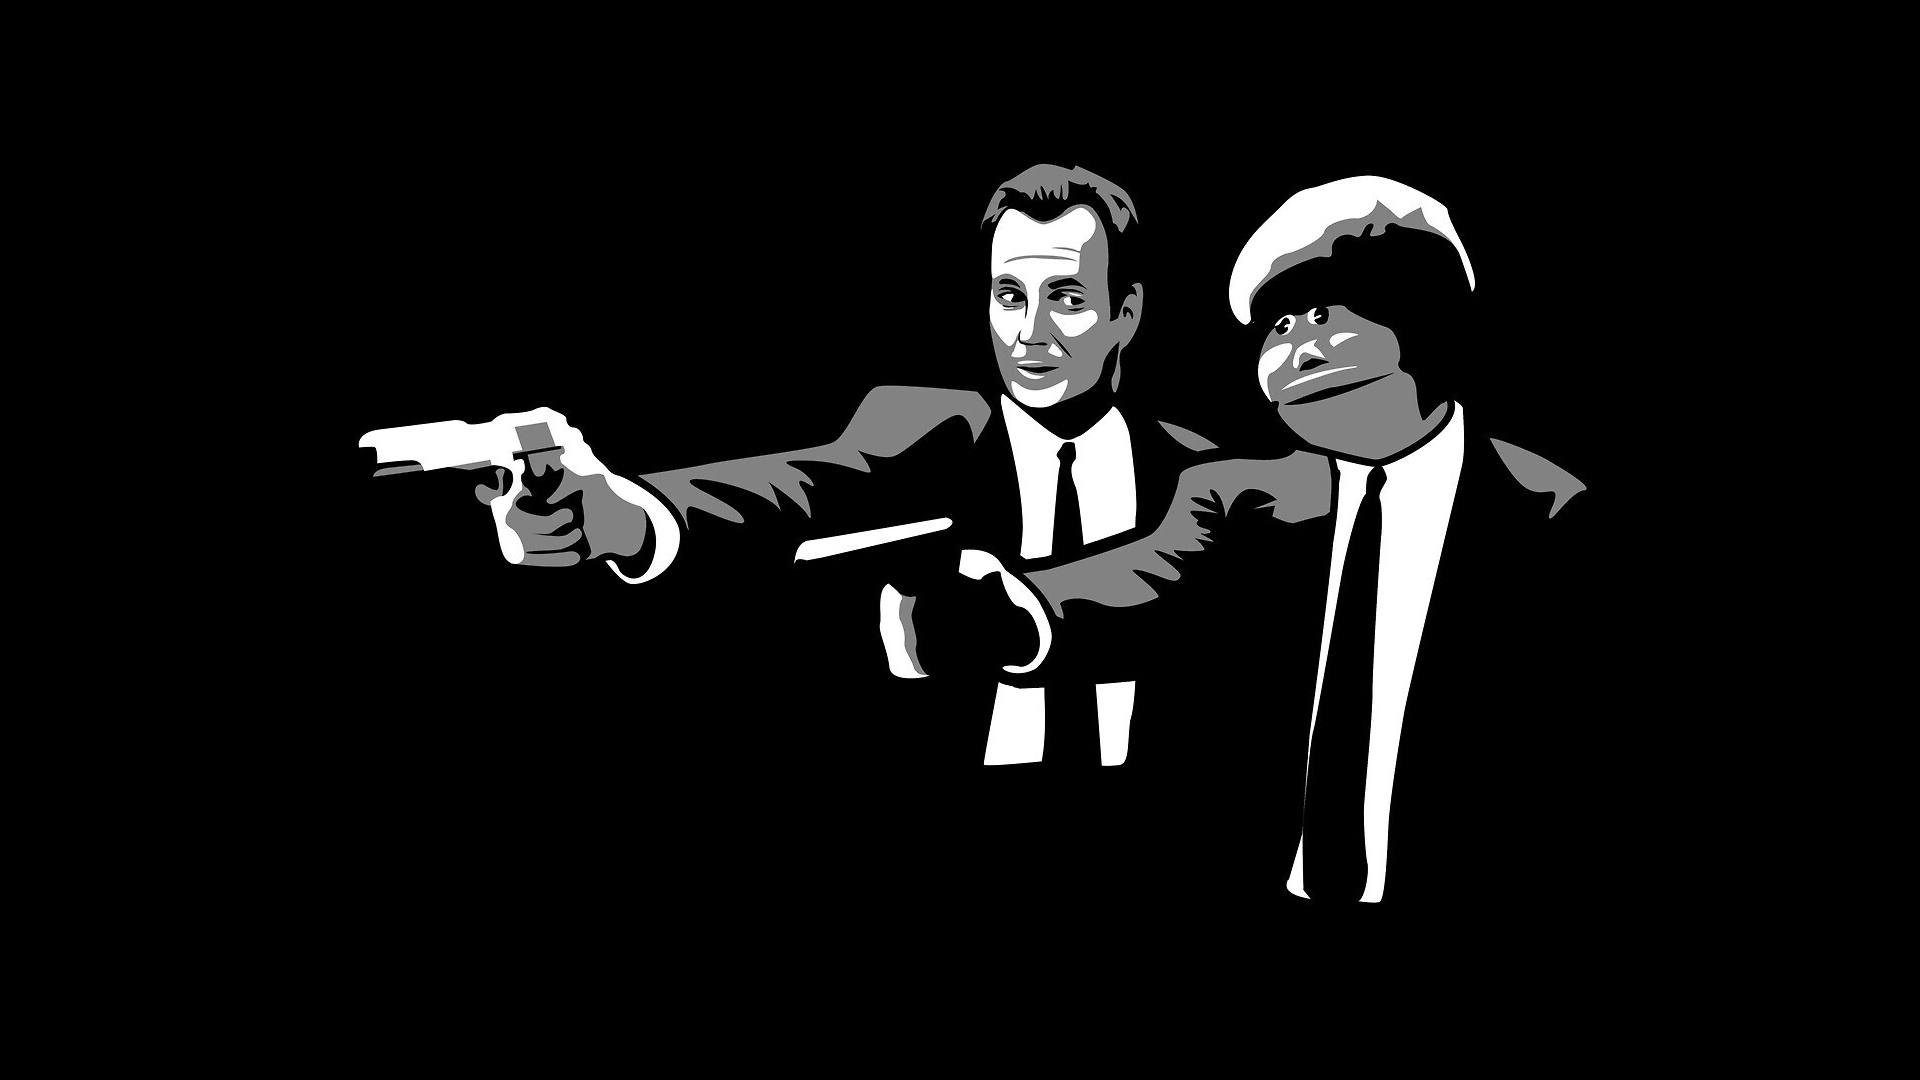 Fall Out Boy Mac Wallpaper Pulp Fiction Wallpapers High Quality Download Free